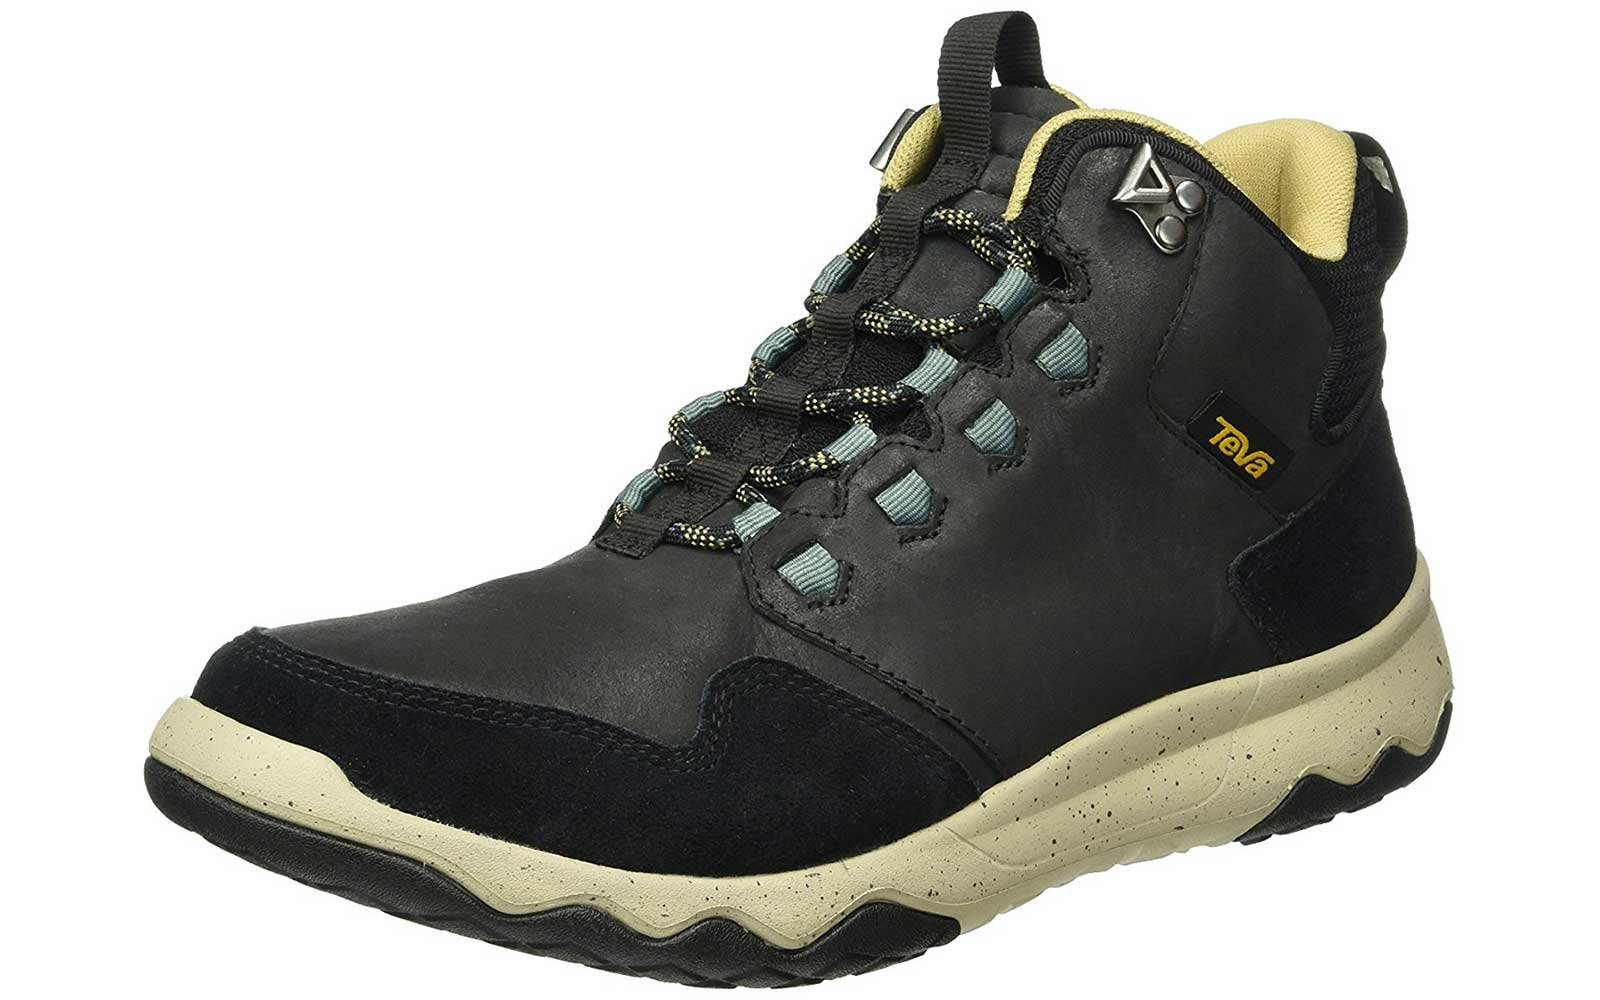 The Best Waterproof Walking Shoes For Men Travel Leisure